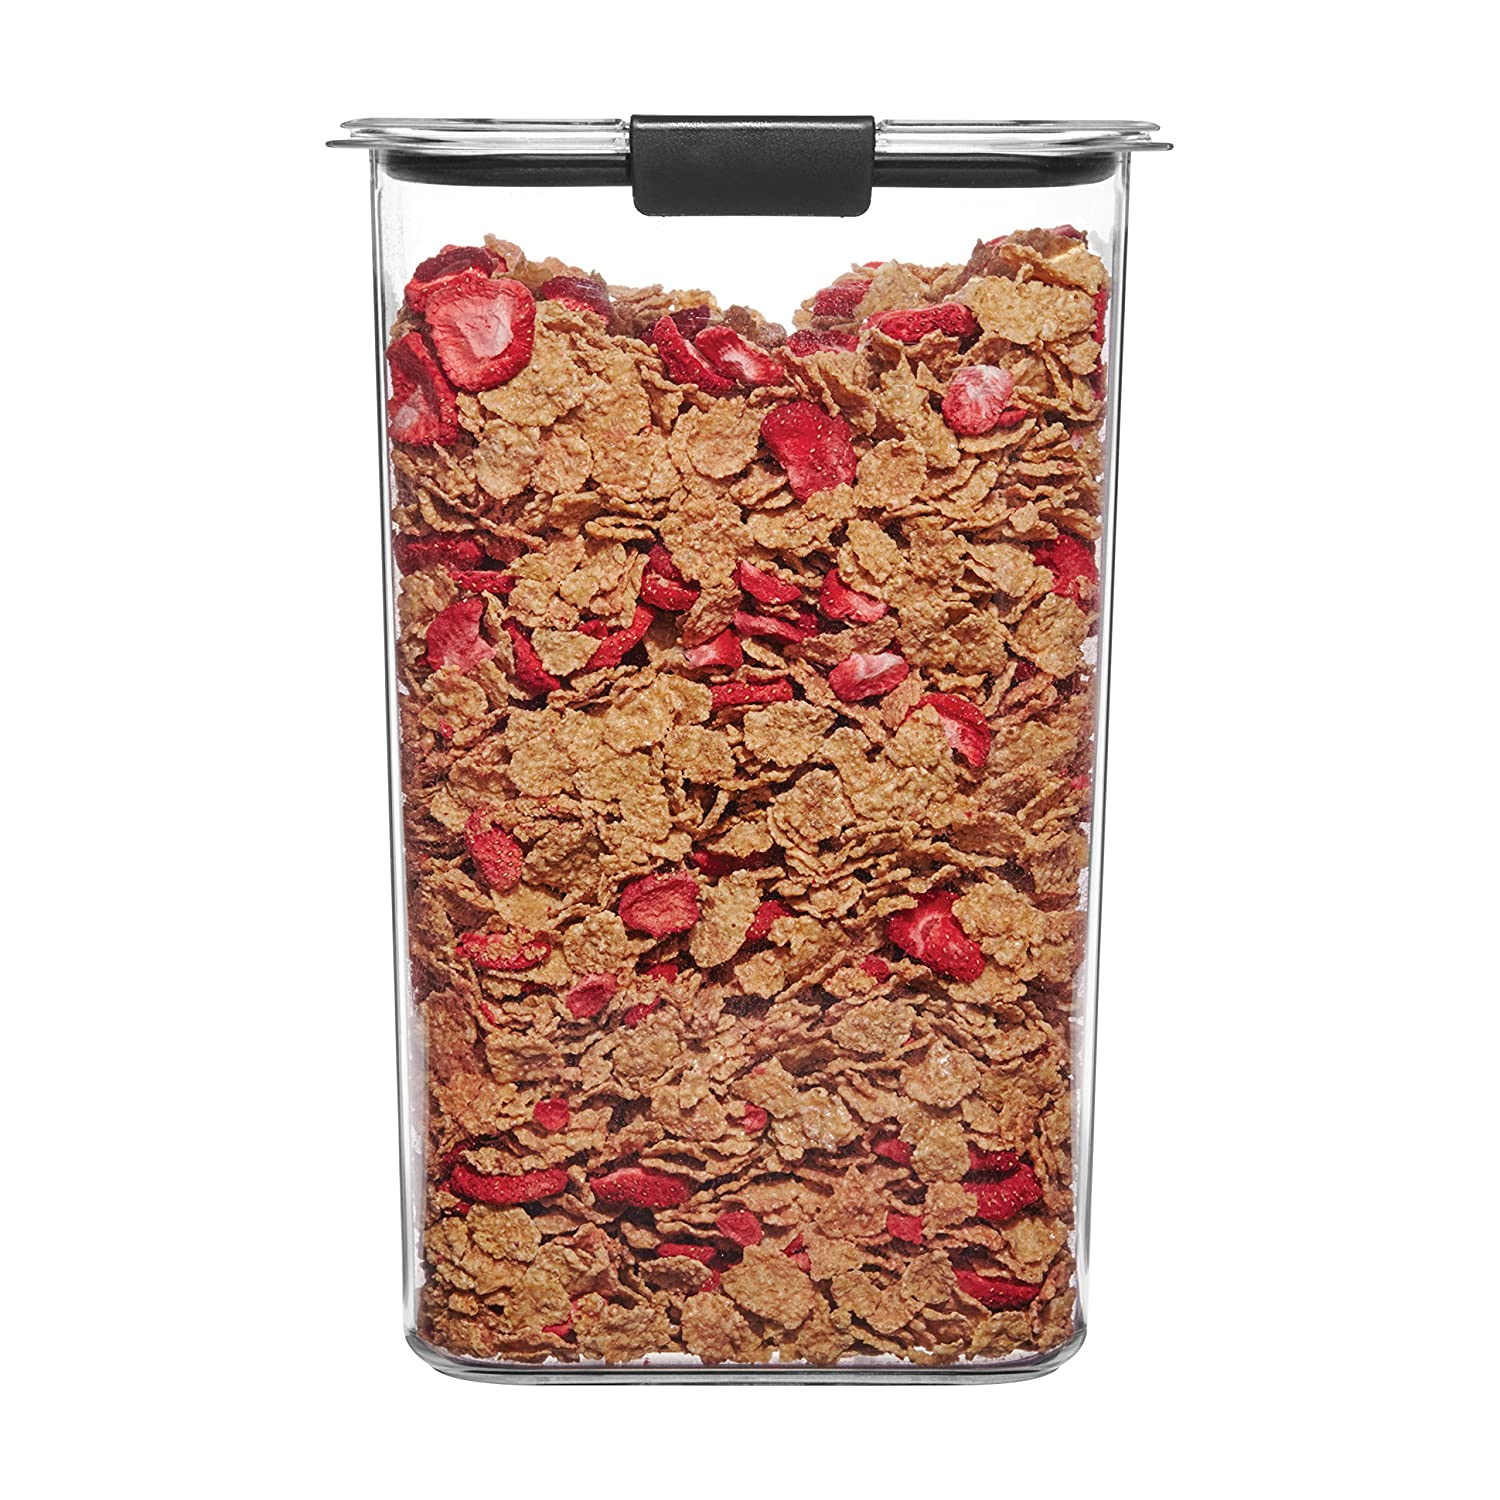 Rubbermaid Brilliance Pantry Airtight Food Storage Container, BPA-Free Plastic